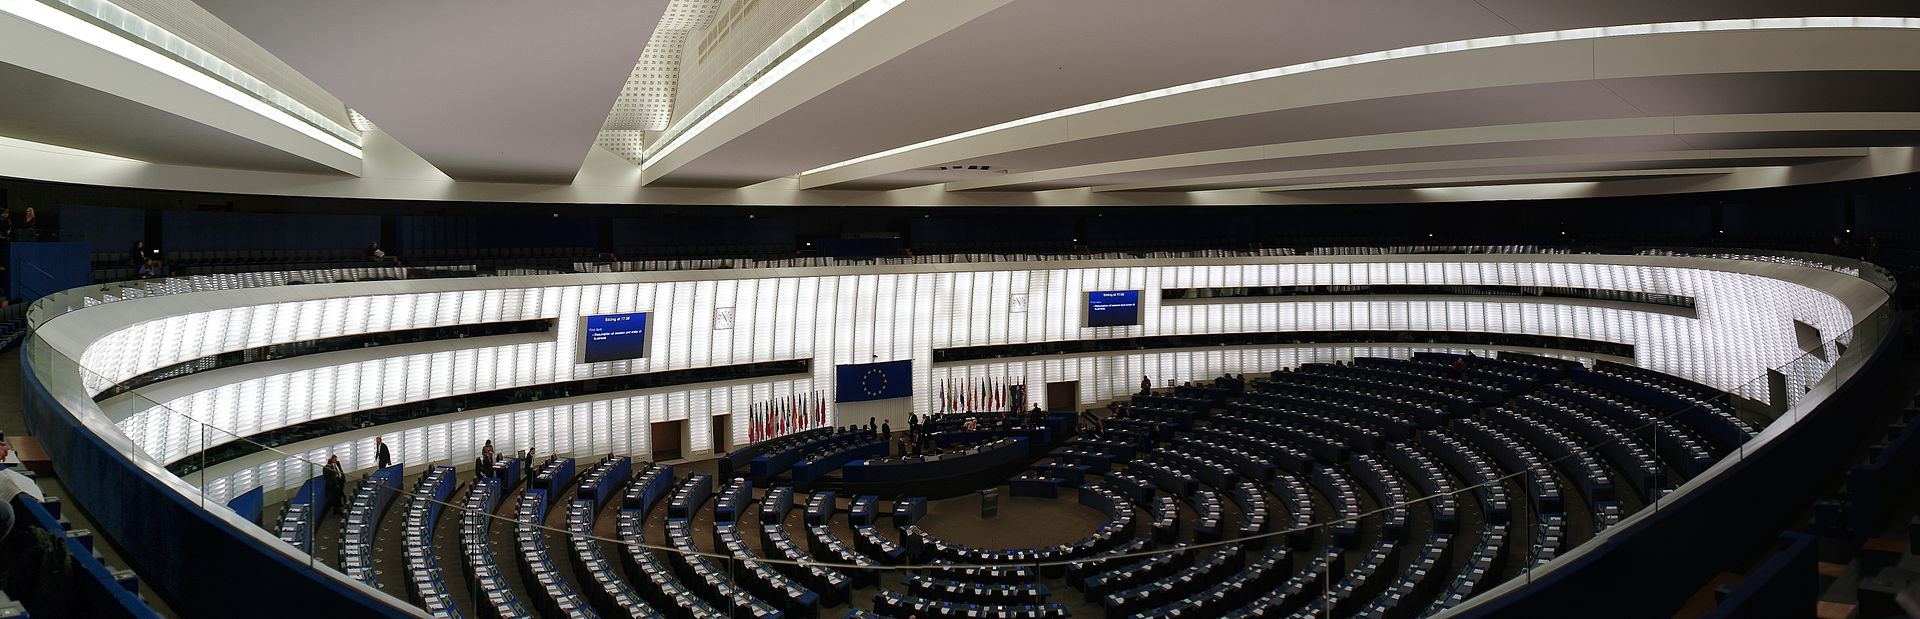 European_Parliament__Plenar_hall_1.jpg